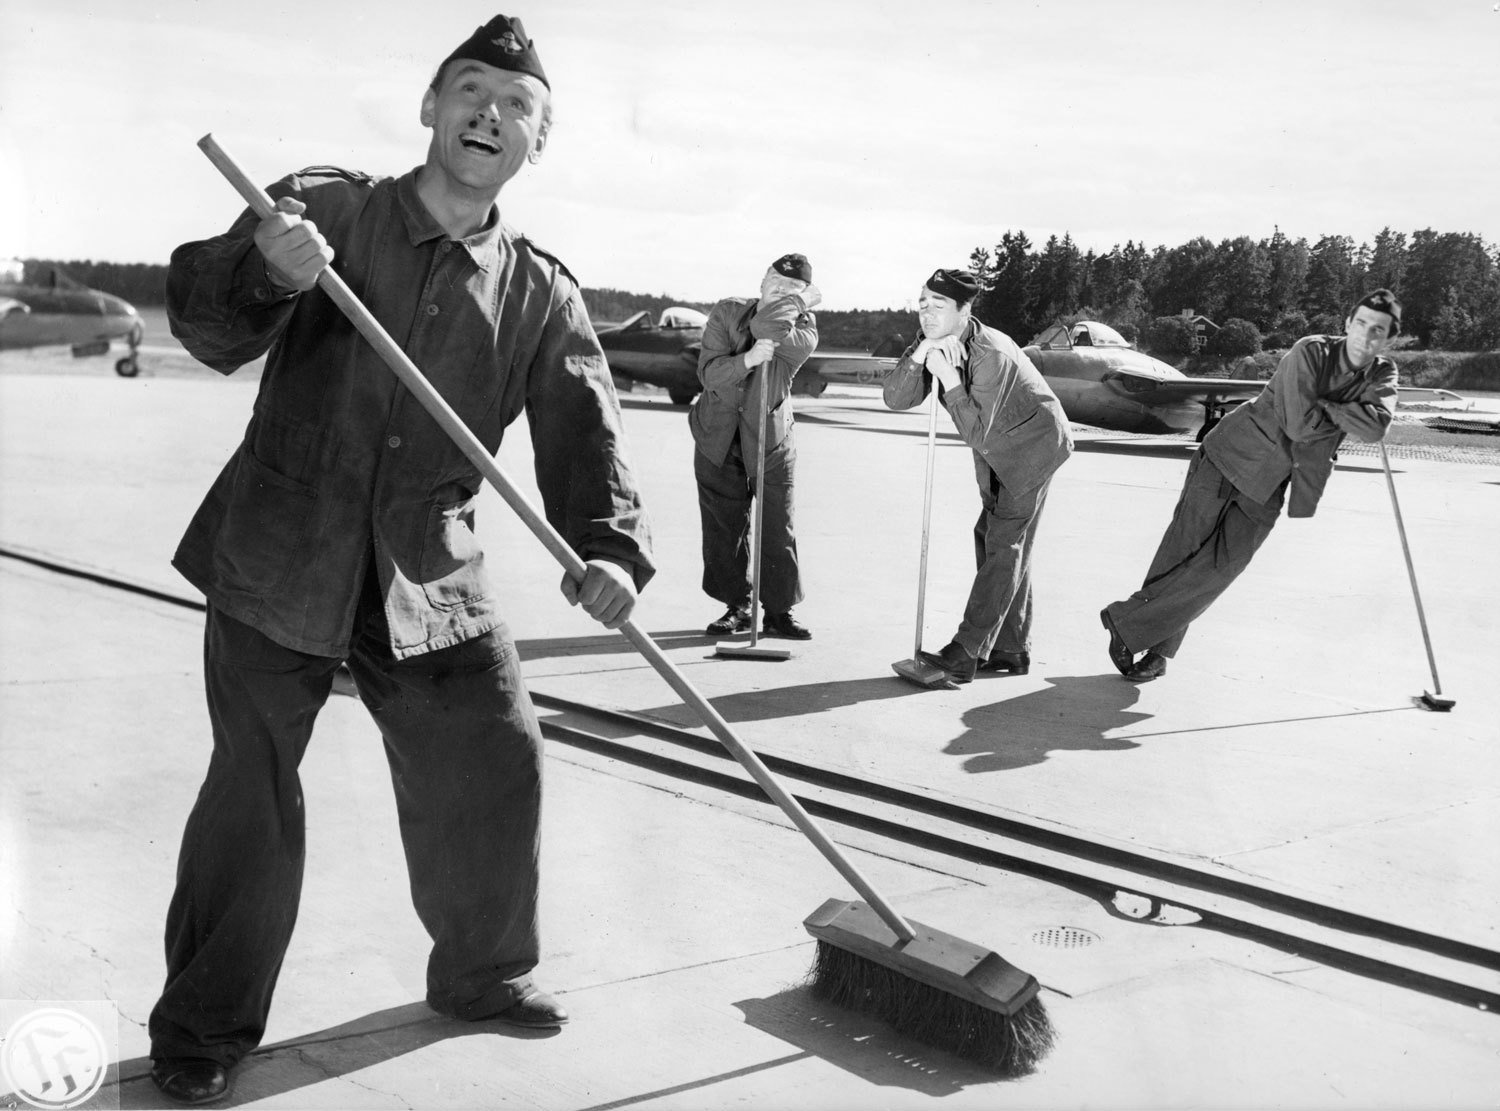 Actor Nils Poppe sweeping the tarmac in 'Flyg-Bom', 1952, Unknown, Kulturmagasinet, Helsingborgs museer, Public Domain Mark